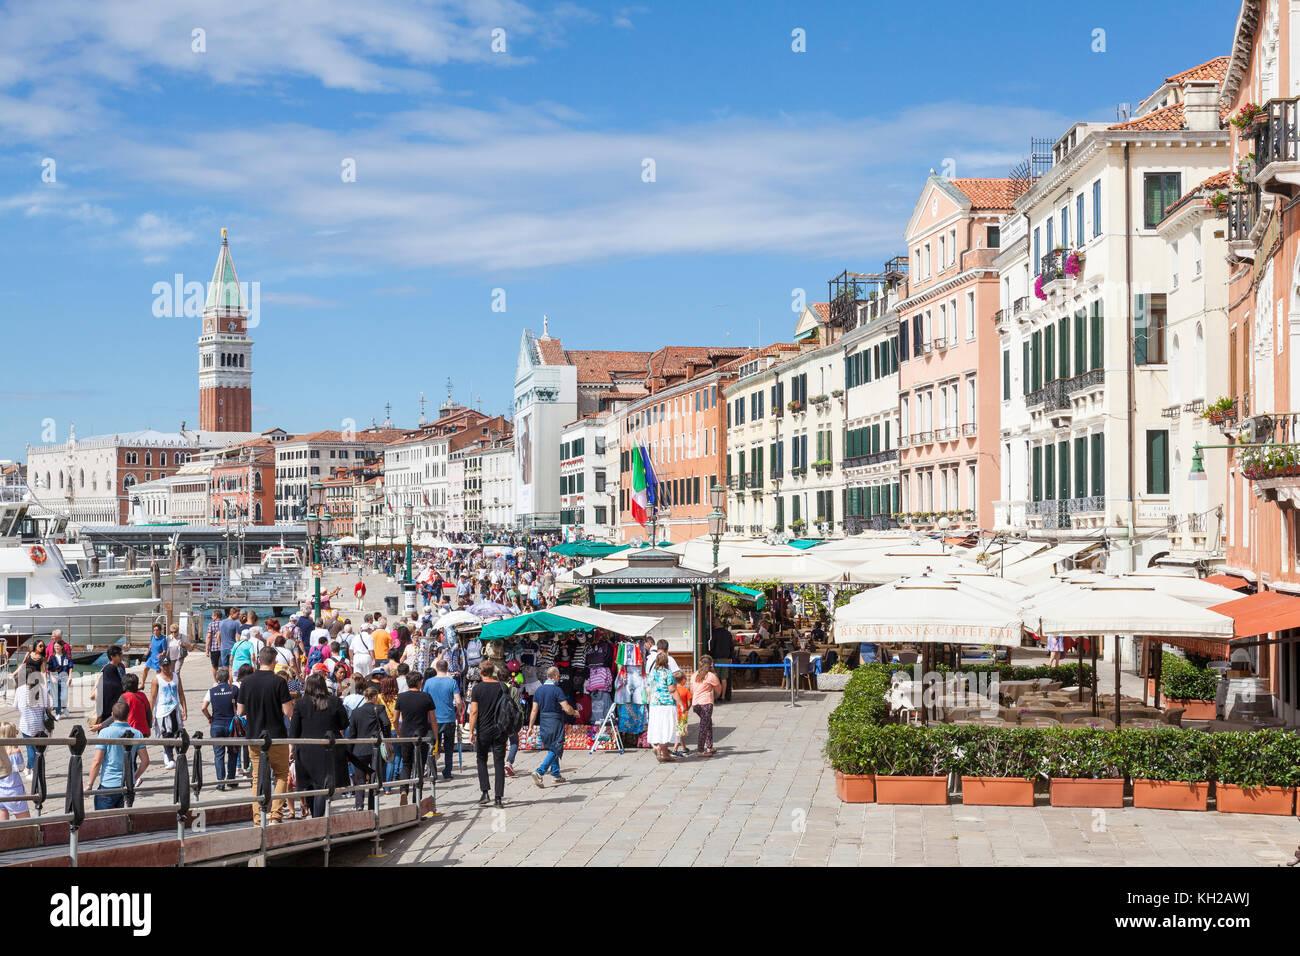 Crowds of tourists on Riva degli Schiavoni, Castello, Venice, Italy. This is where they disembark from the day trip - Stock Image